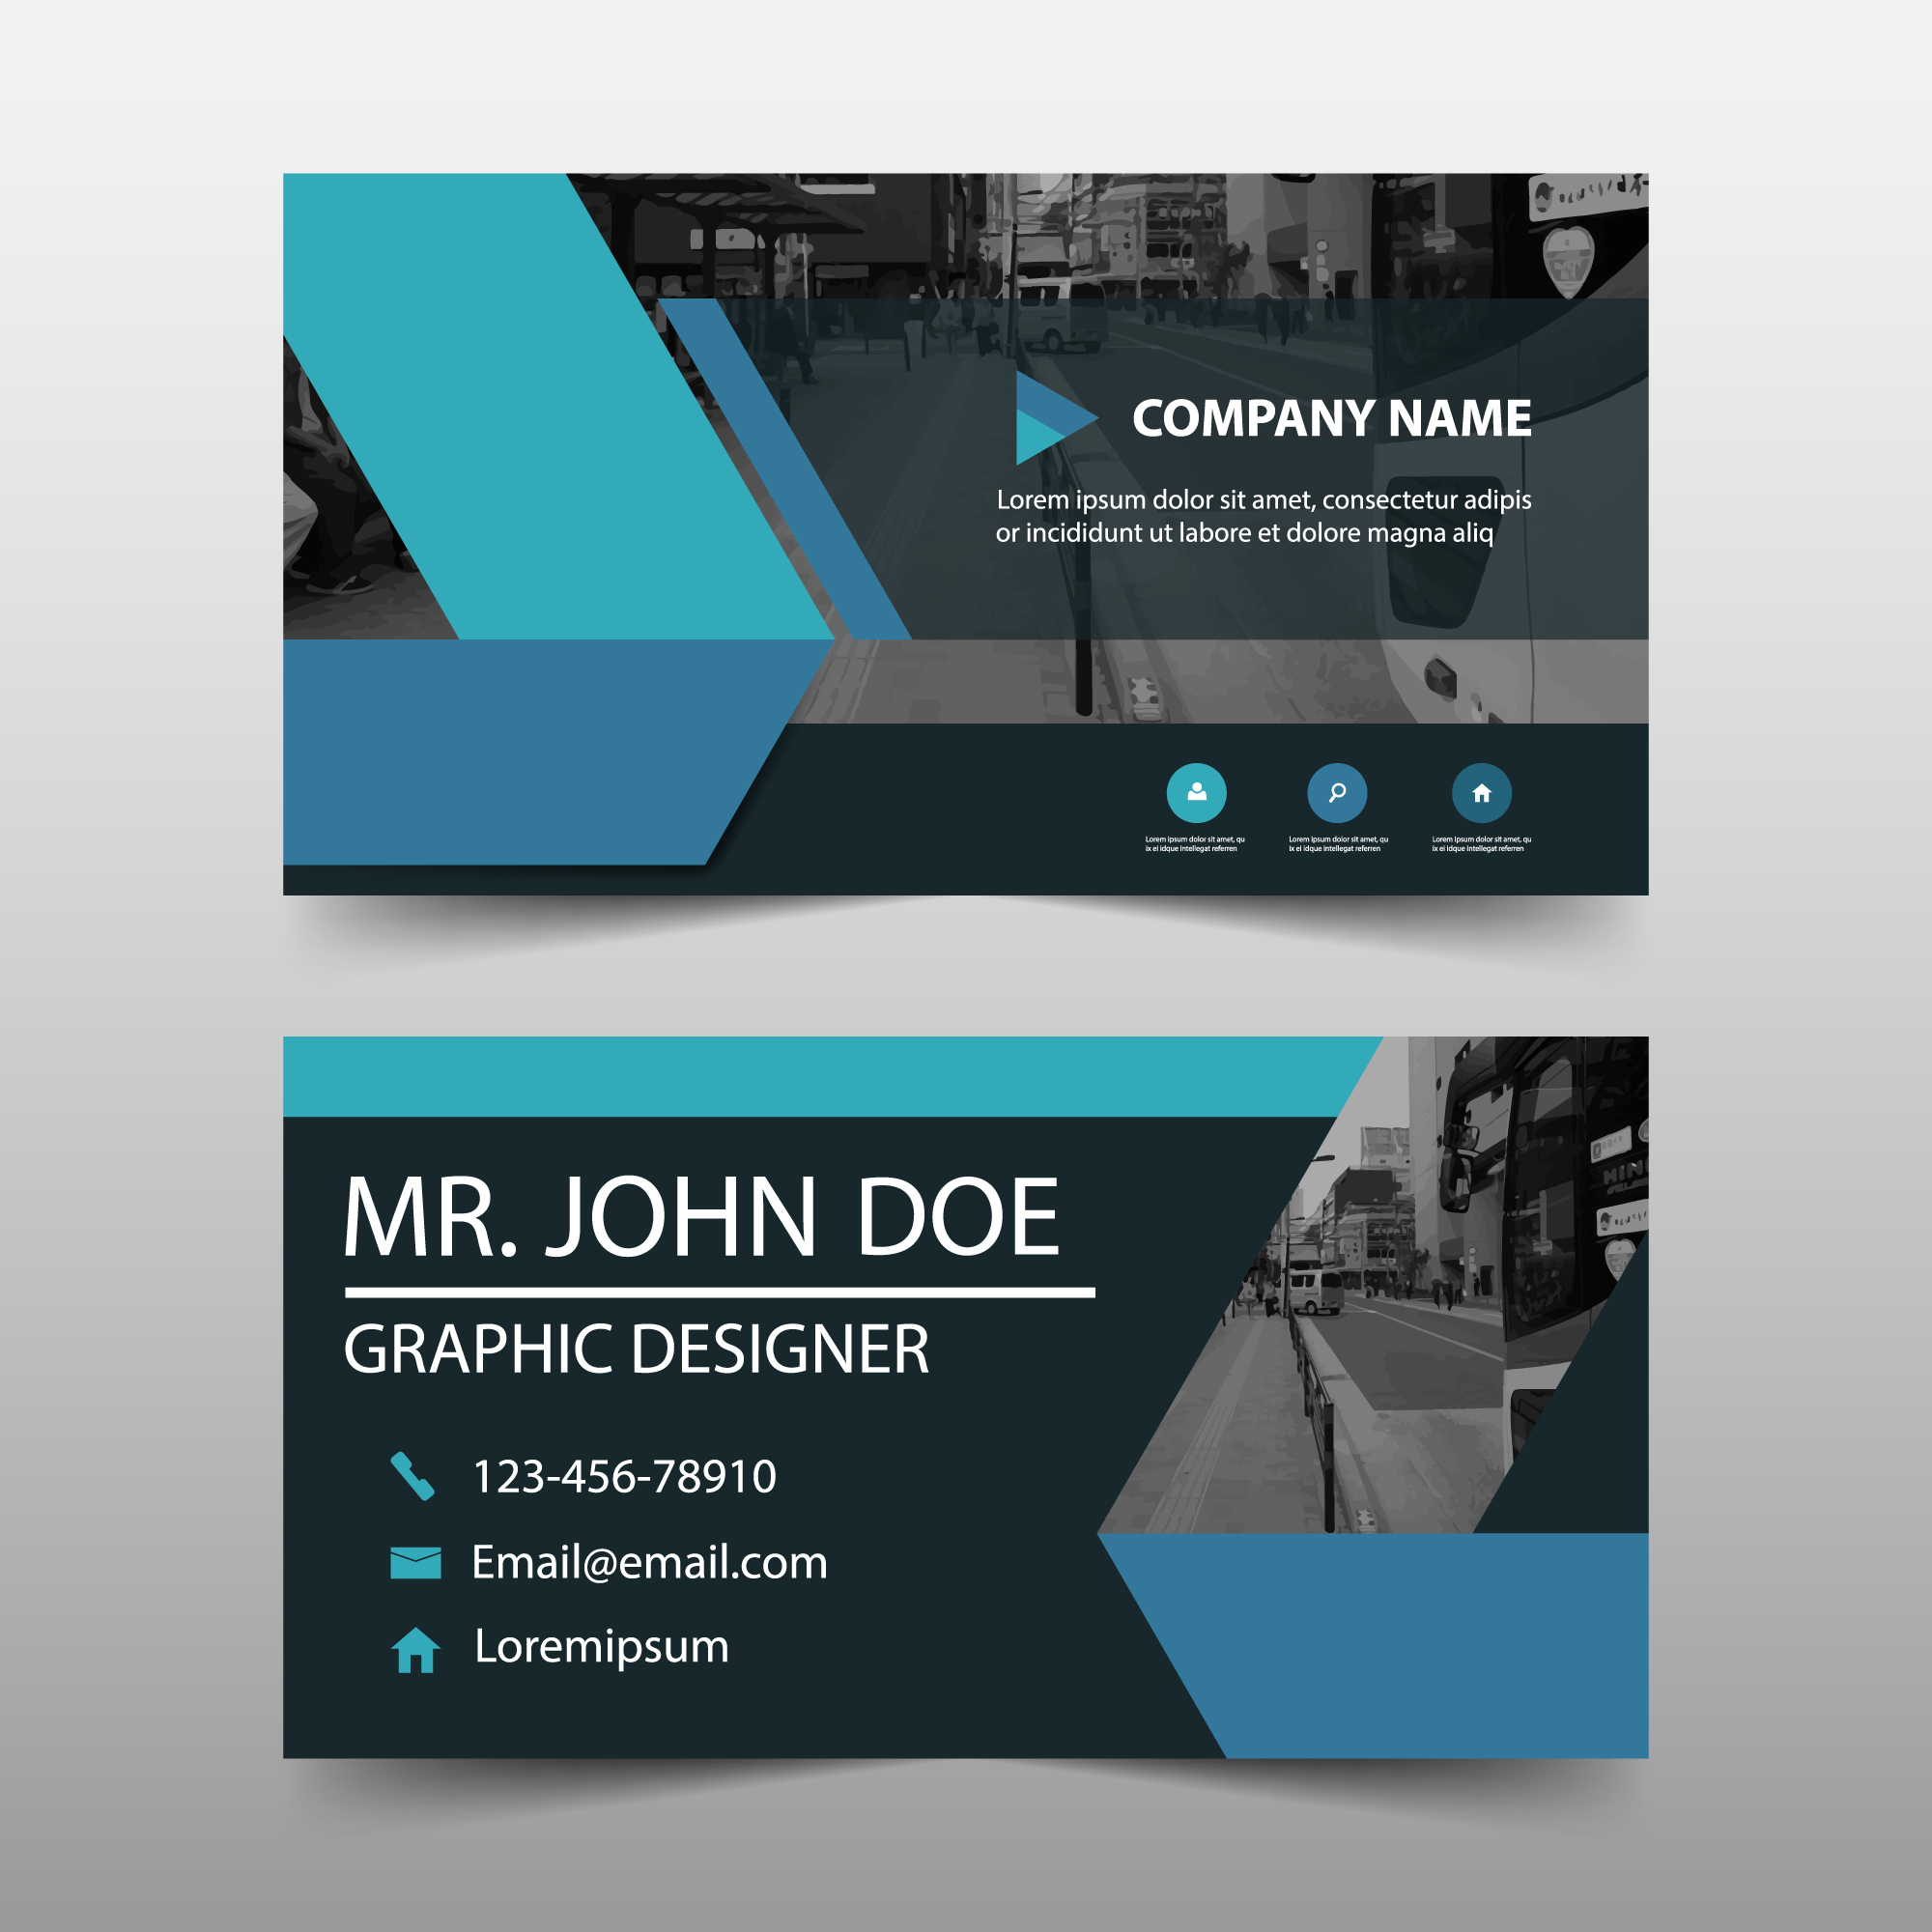 Blue business card template design